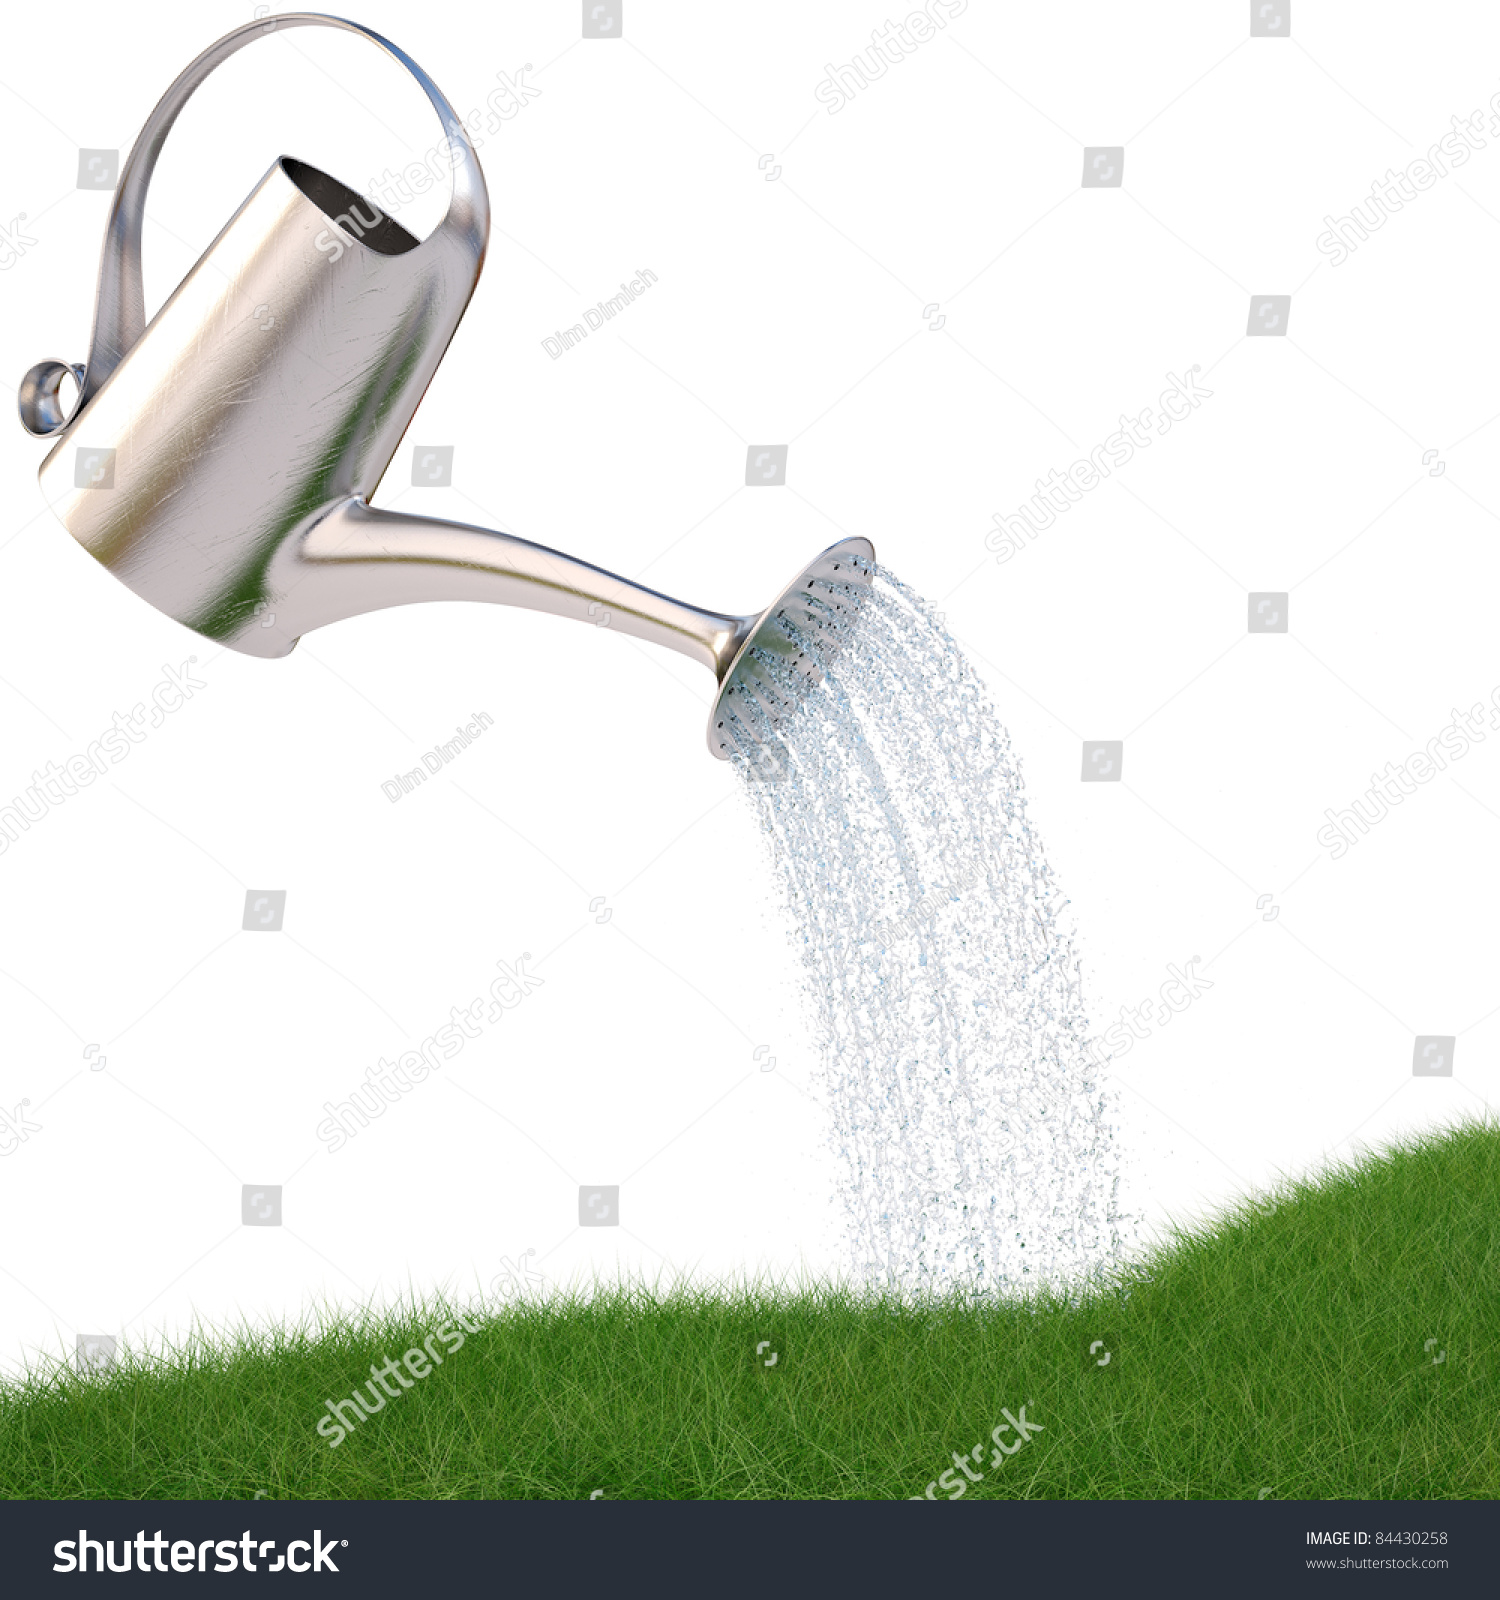 Watering Can Pouring Water On The Grass Isolated On White